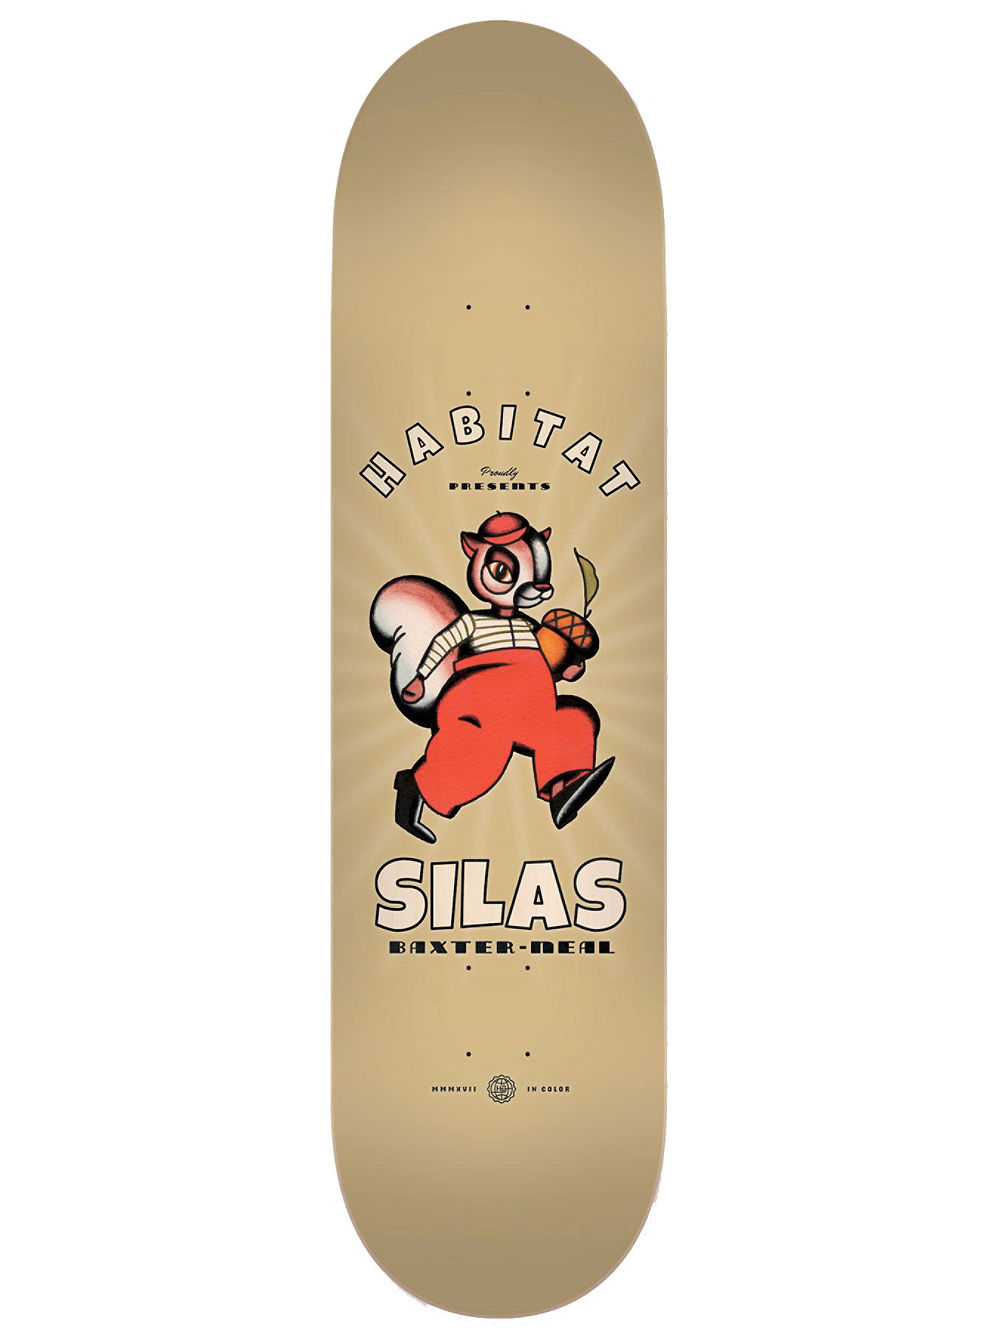 "Silas Celluloid 8.375"" Skate Deck"